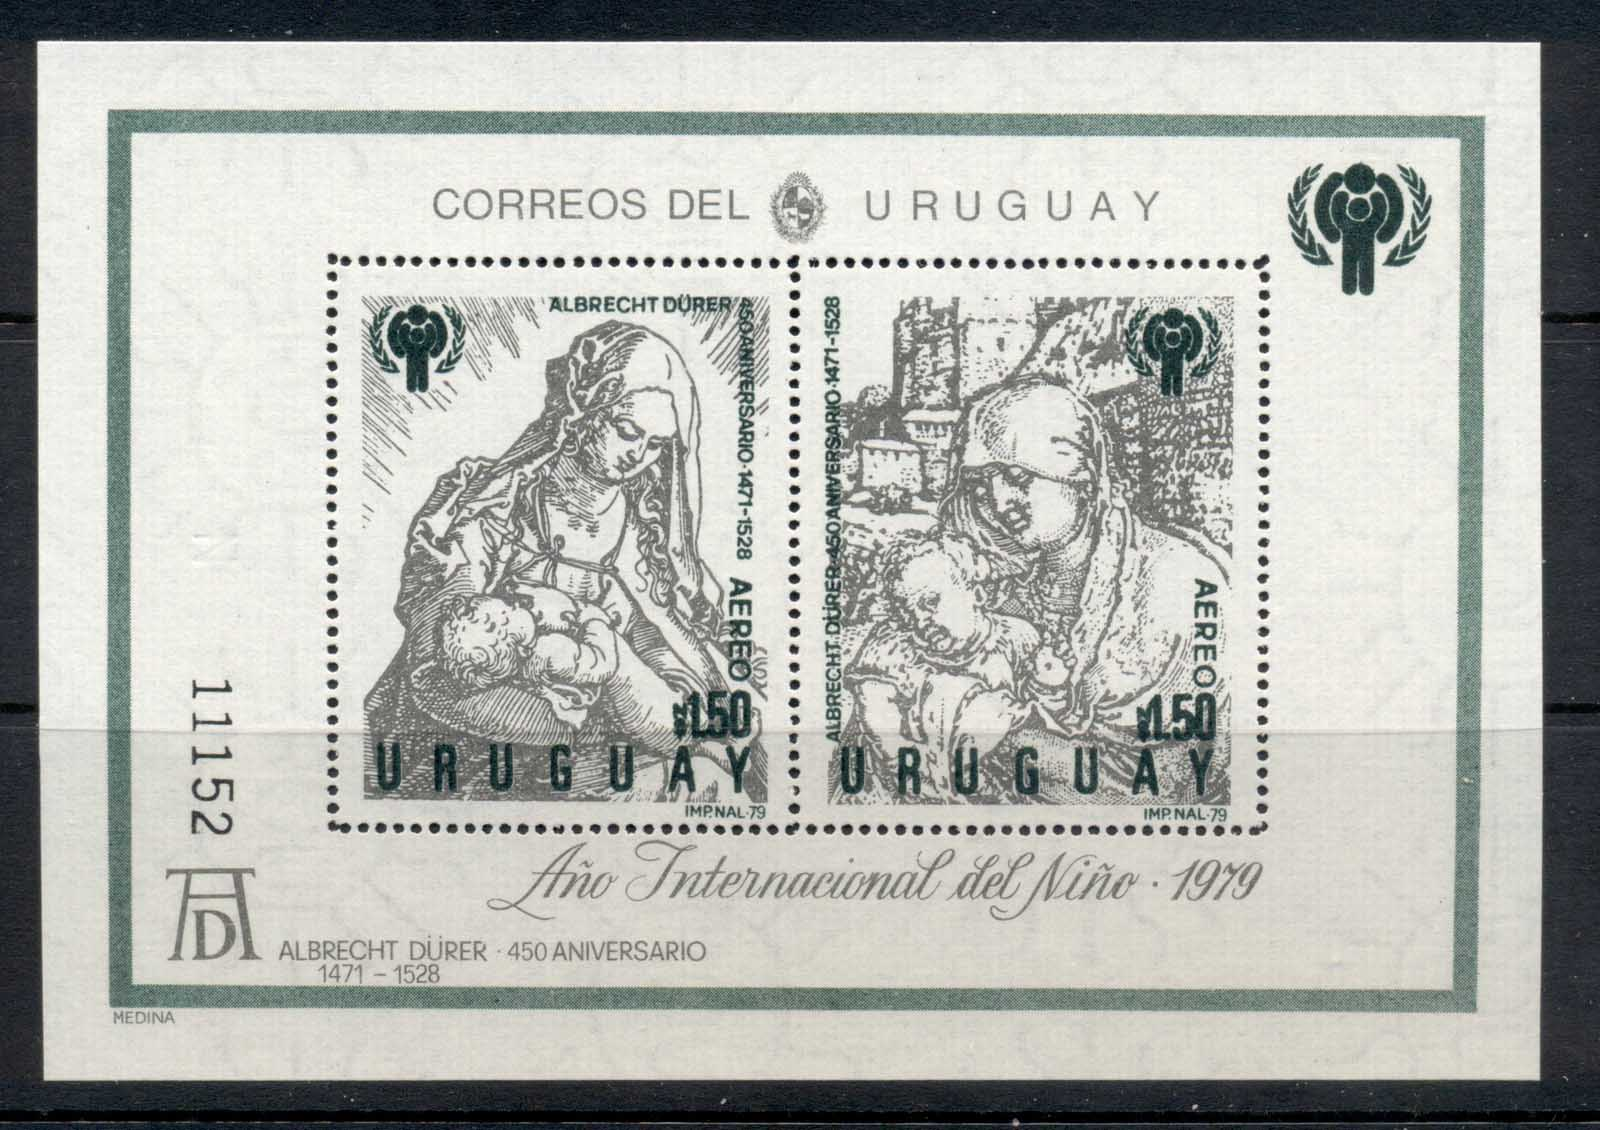 Uruguay 1979 IYC International year of the Child, Albrecht Durer MS MUH